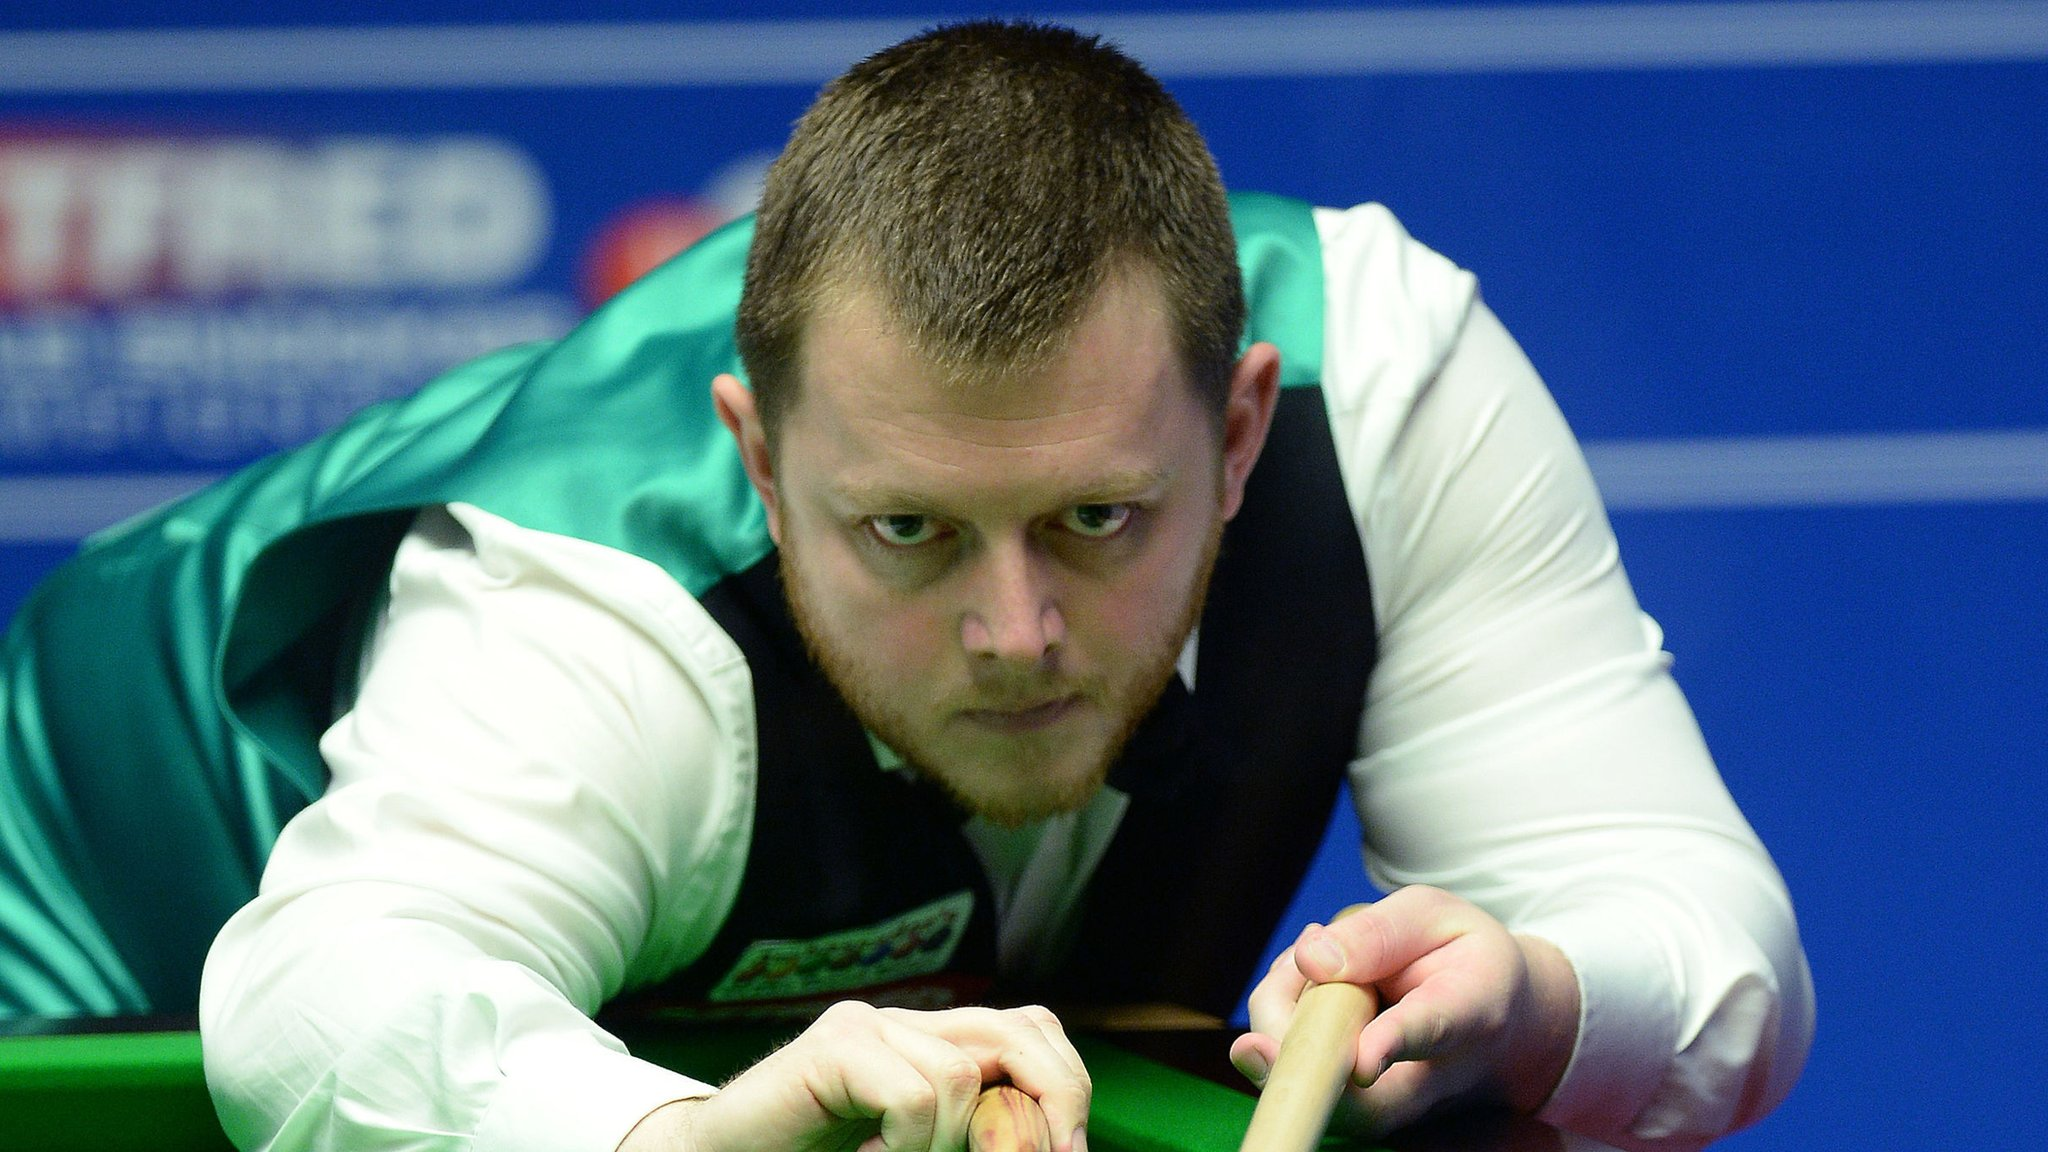 World Snooker Championship: Allen rows back on self-criticism after Higgins defeat